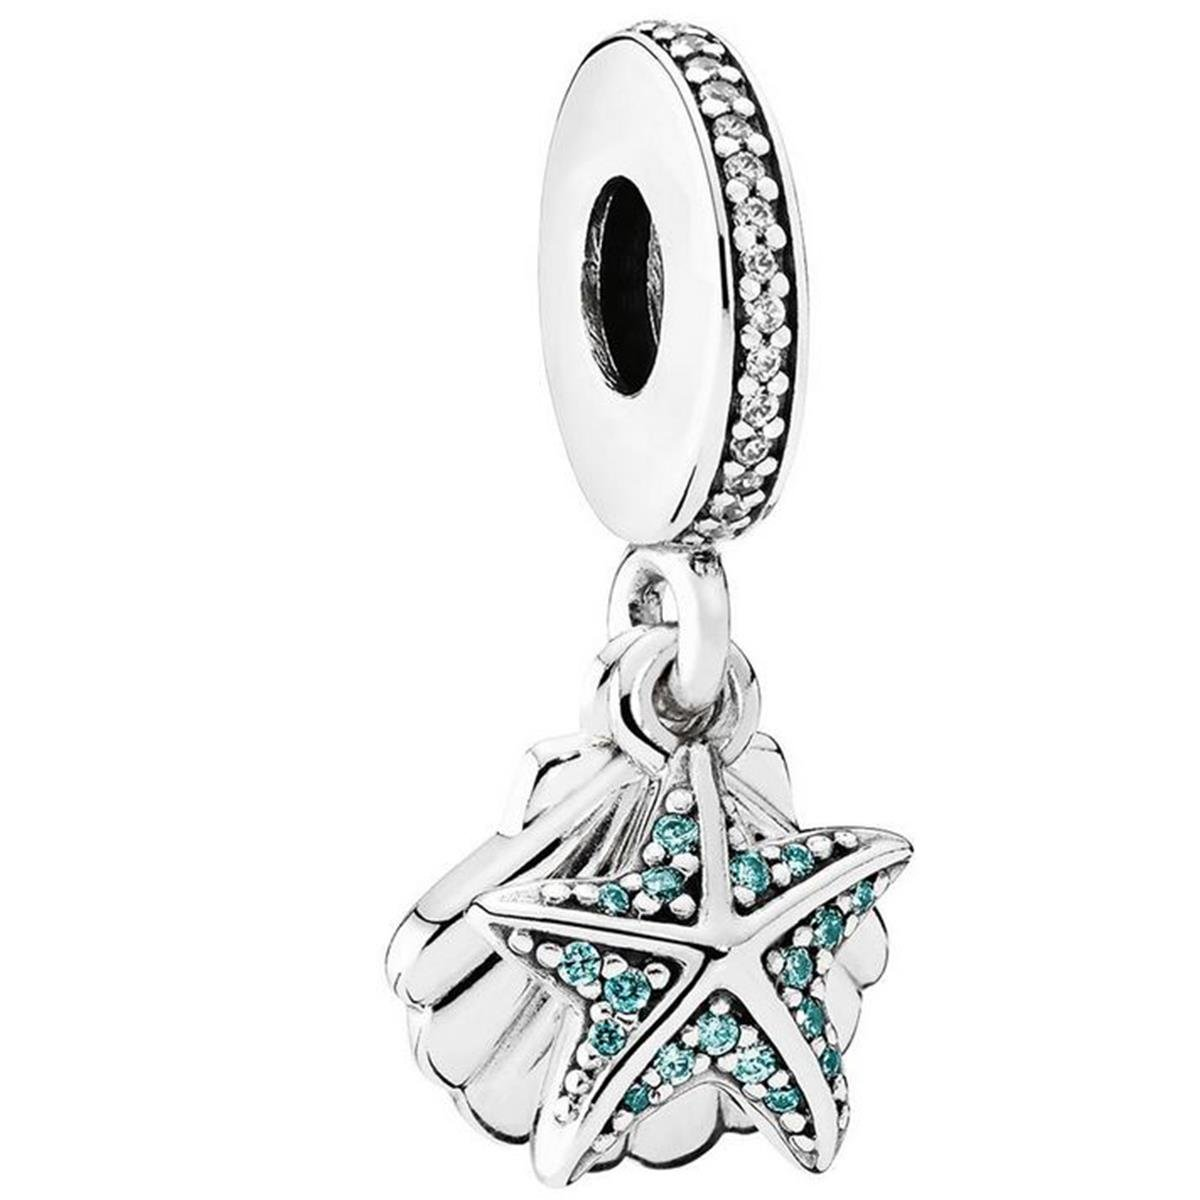 PANDORA Tropical Starfish & Sea Shell Dangle Charm, Sterling Silver, Frosty Mint & Clear Cubic Zirconia, One Size by PANDORA